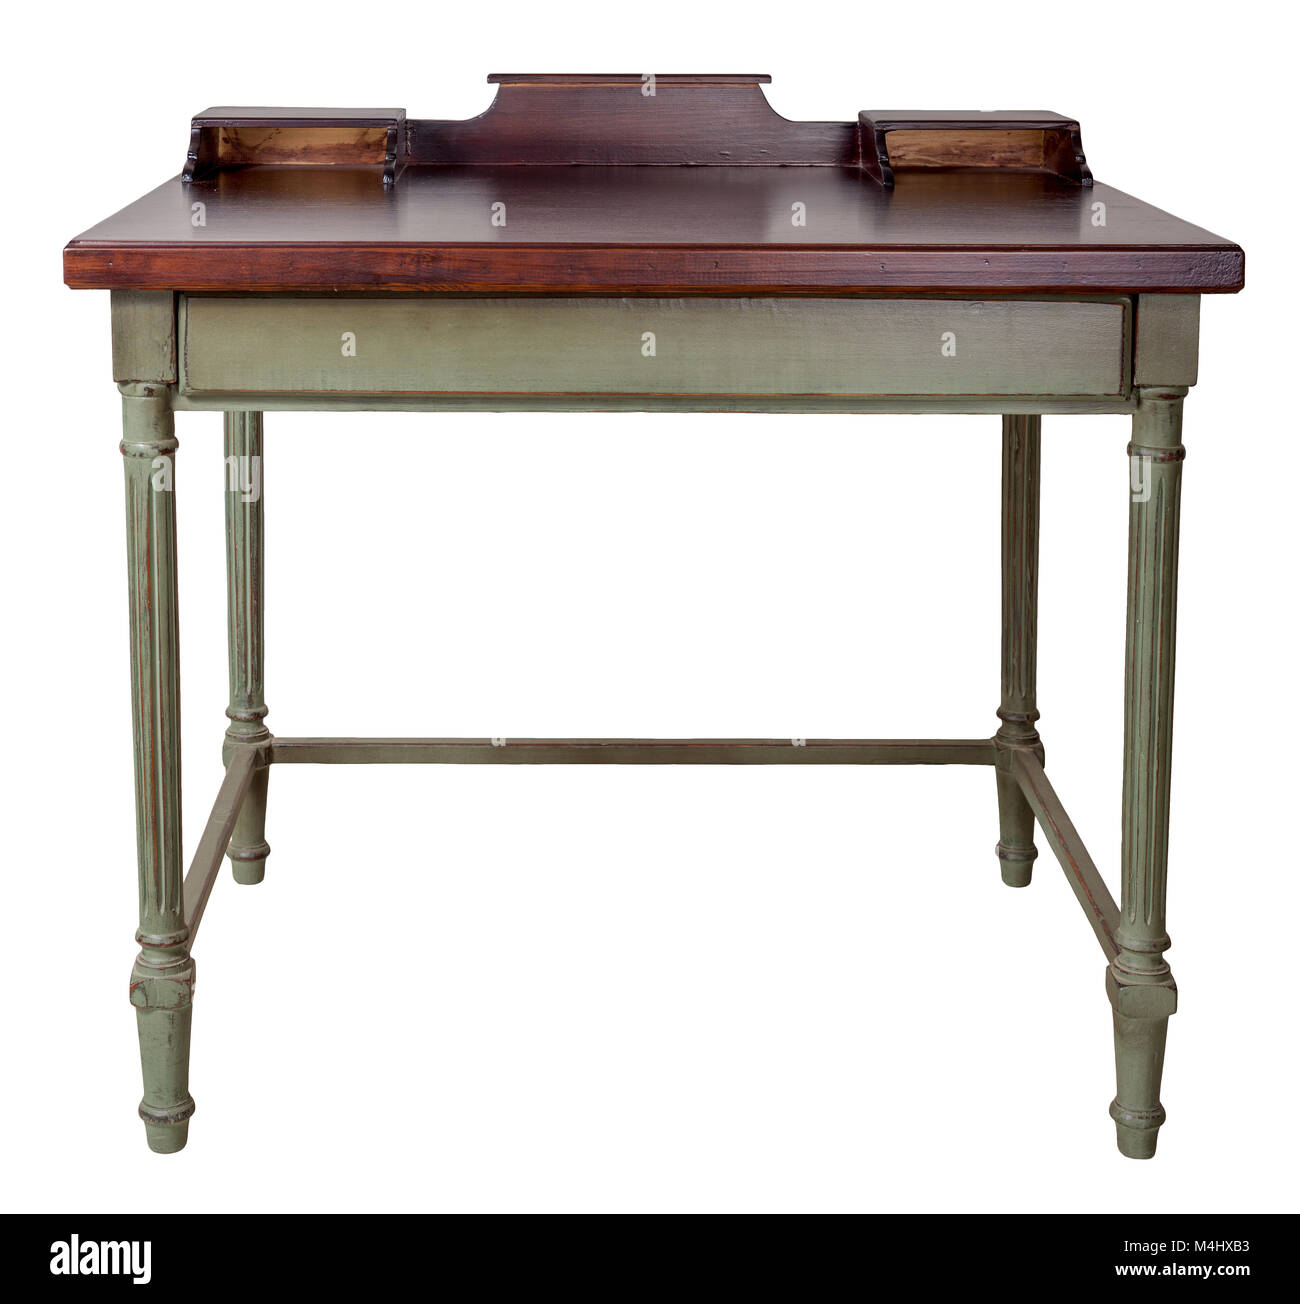 Vintage Furniture - Retro wooden desk table with two built-in trays, dark brown top and light green legs isolated - Stock Image